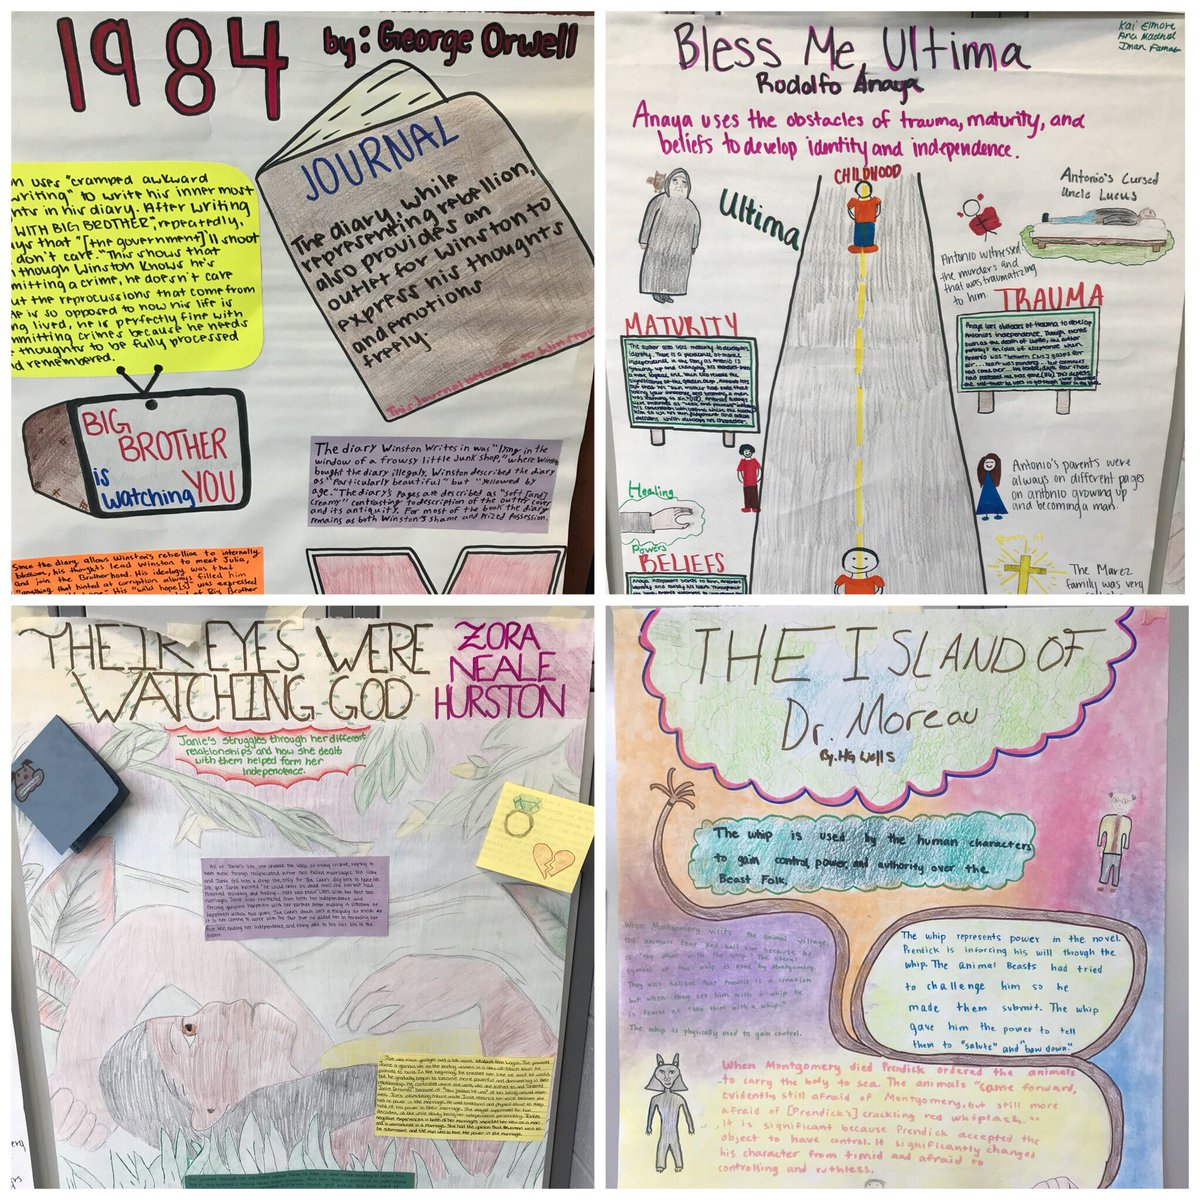 Research Essay Thesis Statement Example Karry Dornak On Twitter Blown Away By The Graphic Essay Review Posters My  Ss Designed And Wrote   Wdkclt  Persuasive Essay Examples For High School also Essay Writing Topics For High School Students Karry Dornak On Twitter Blown Away By The Graphic Essay Review  Sample Essay Thesis Statement